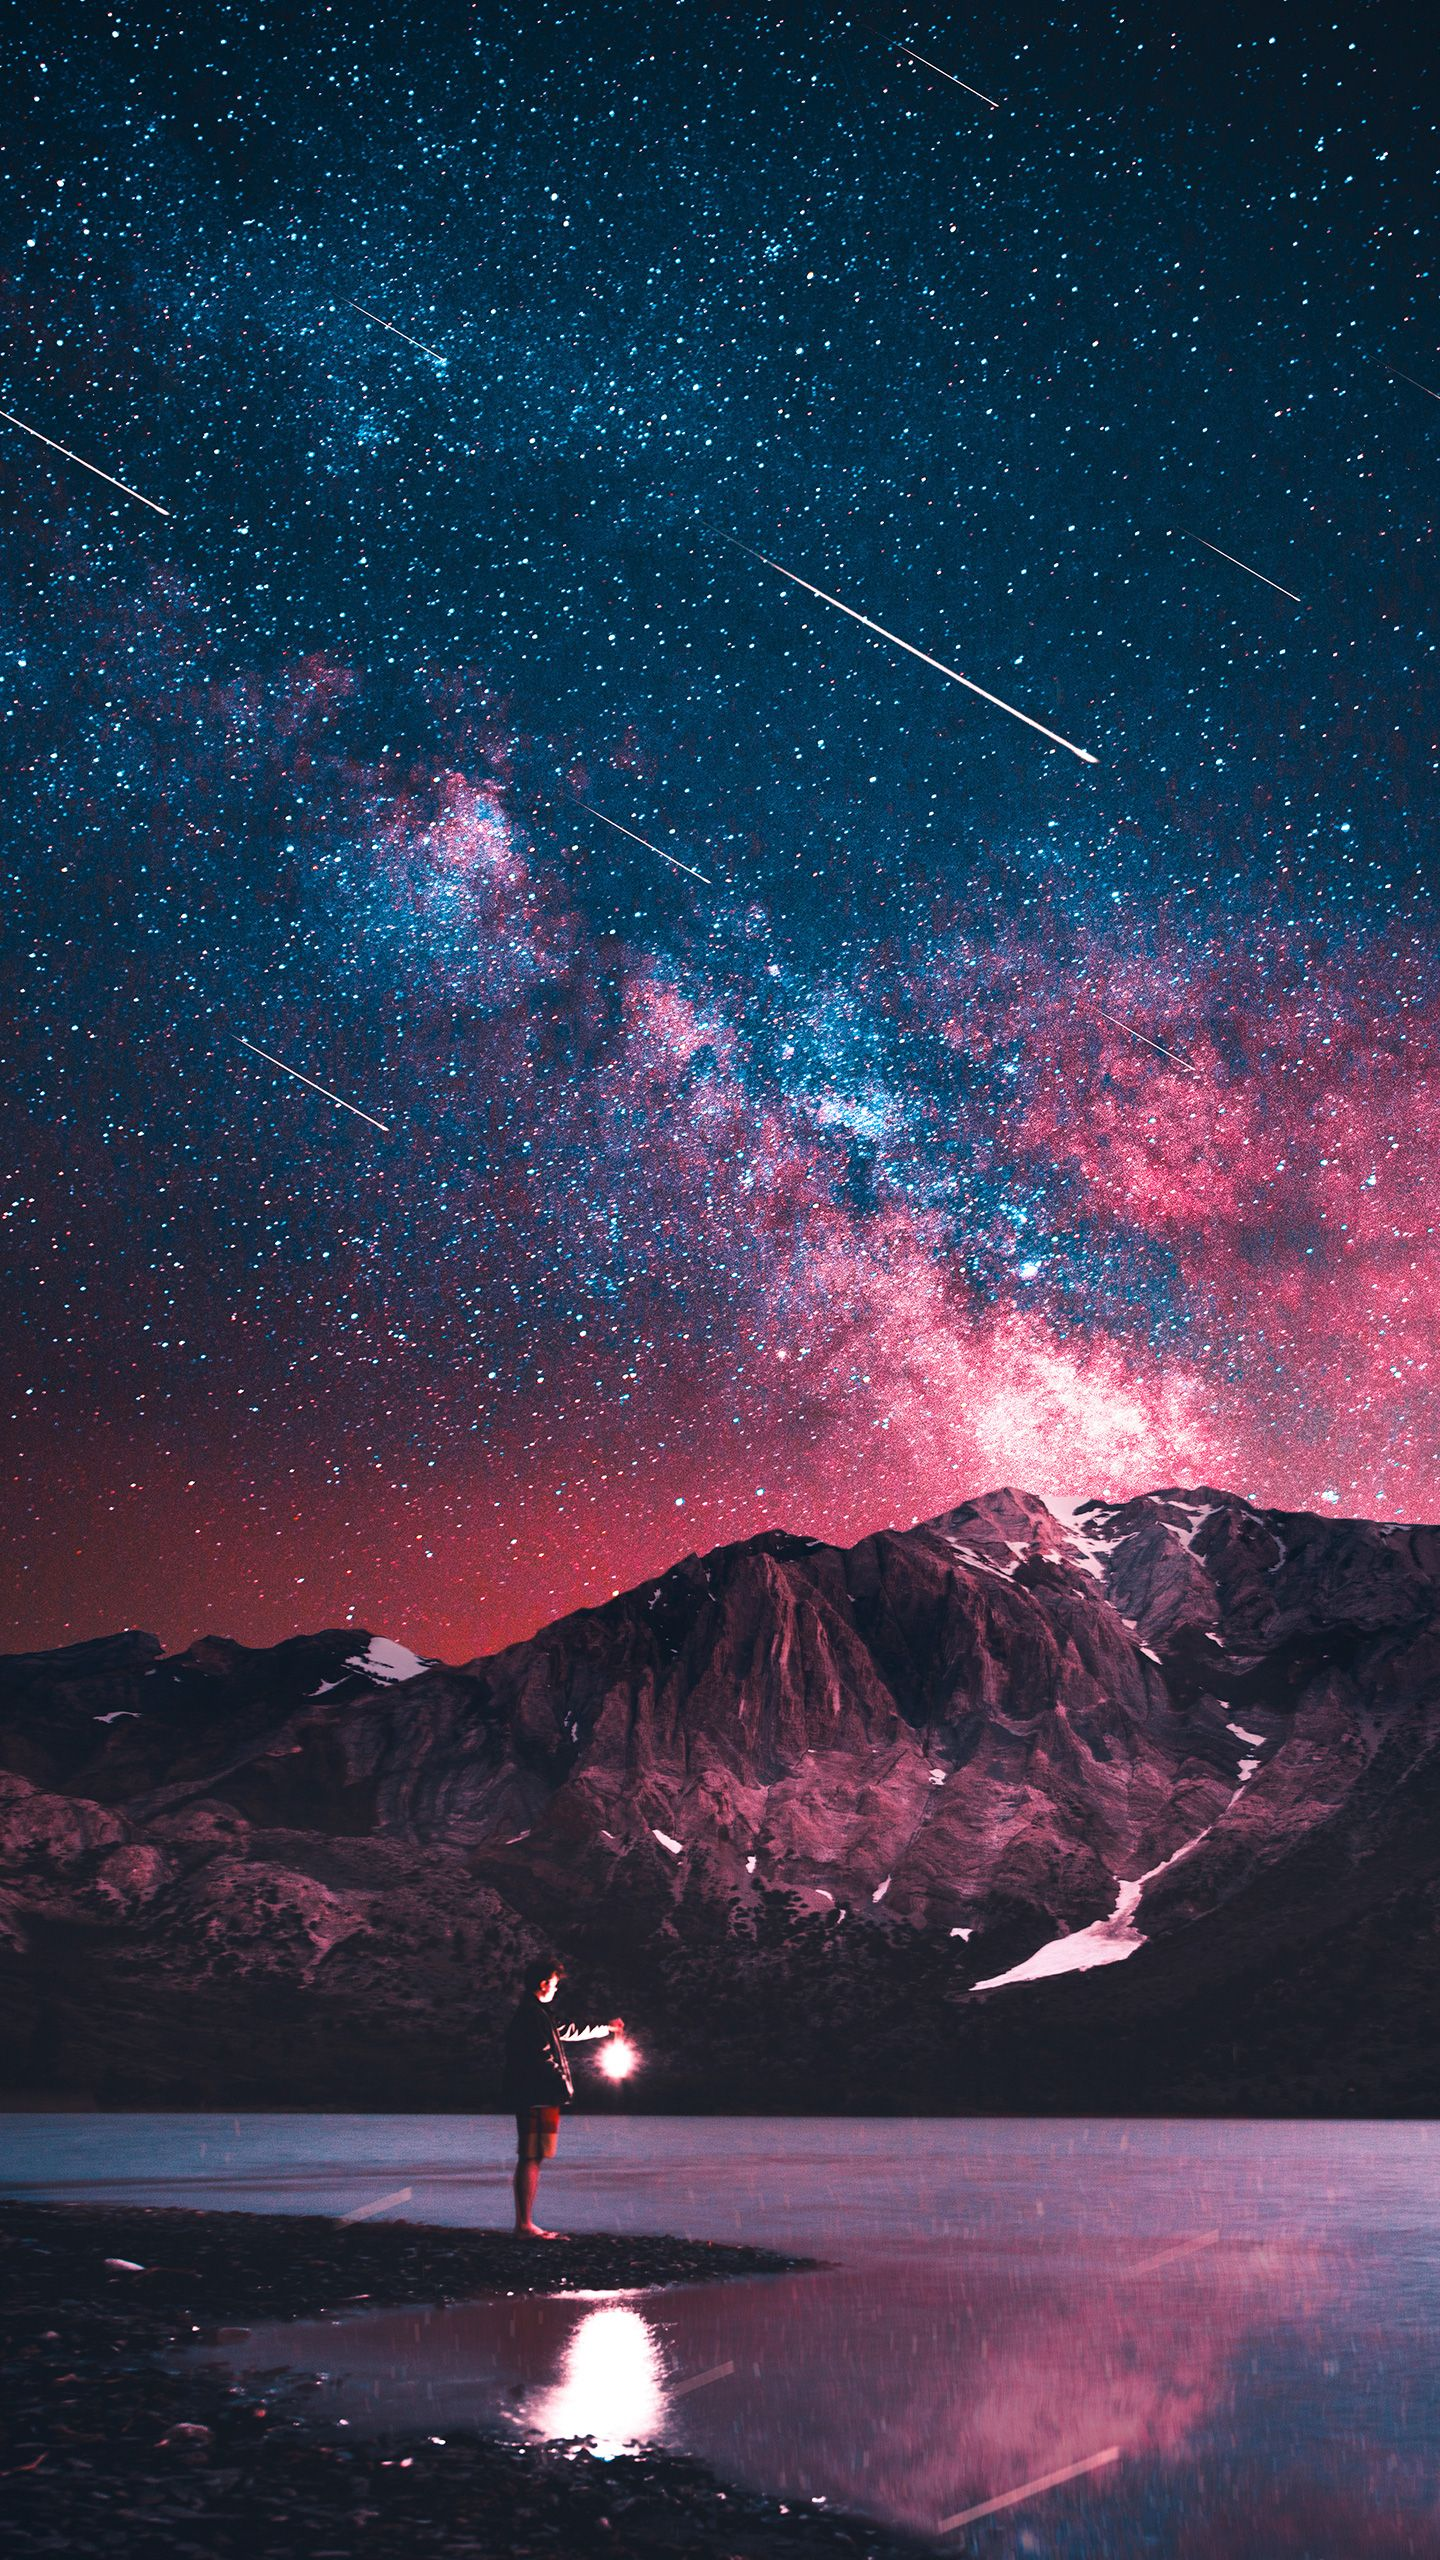 Stars Along The Mountains Starry Night Wallpaper Galaxy Wallpaper Night Sky Wallpaper